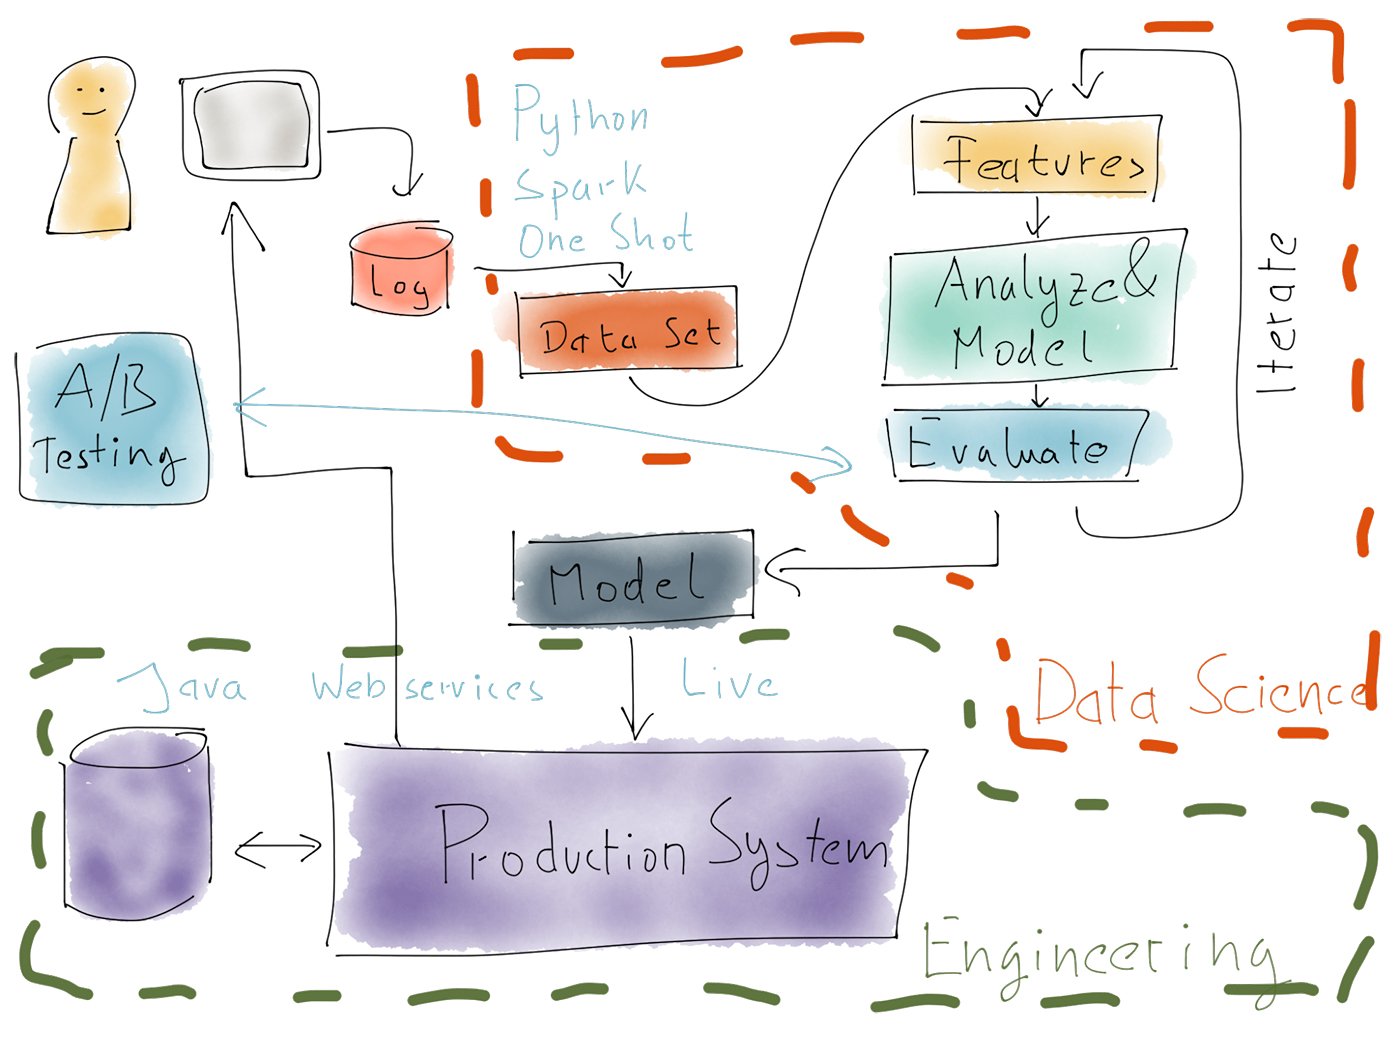 production systems and data science systems